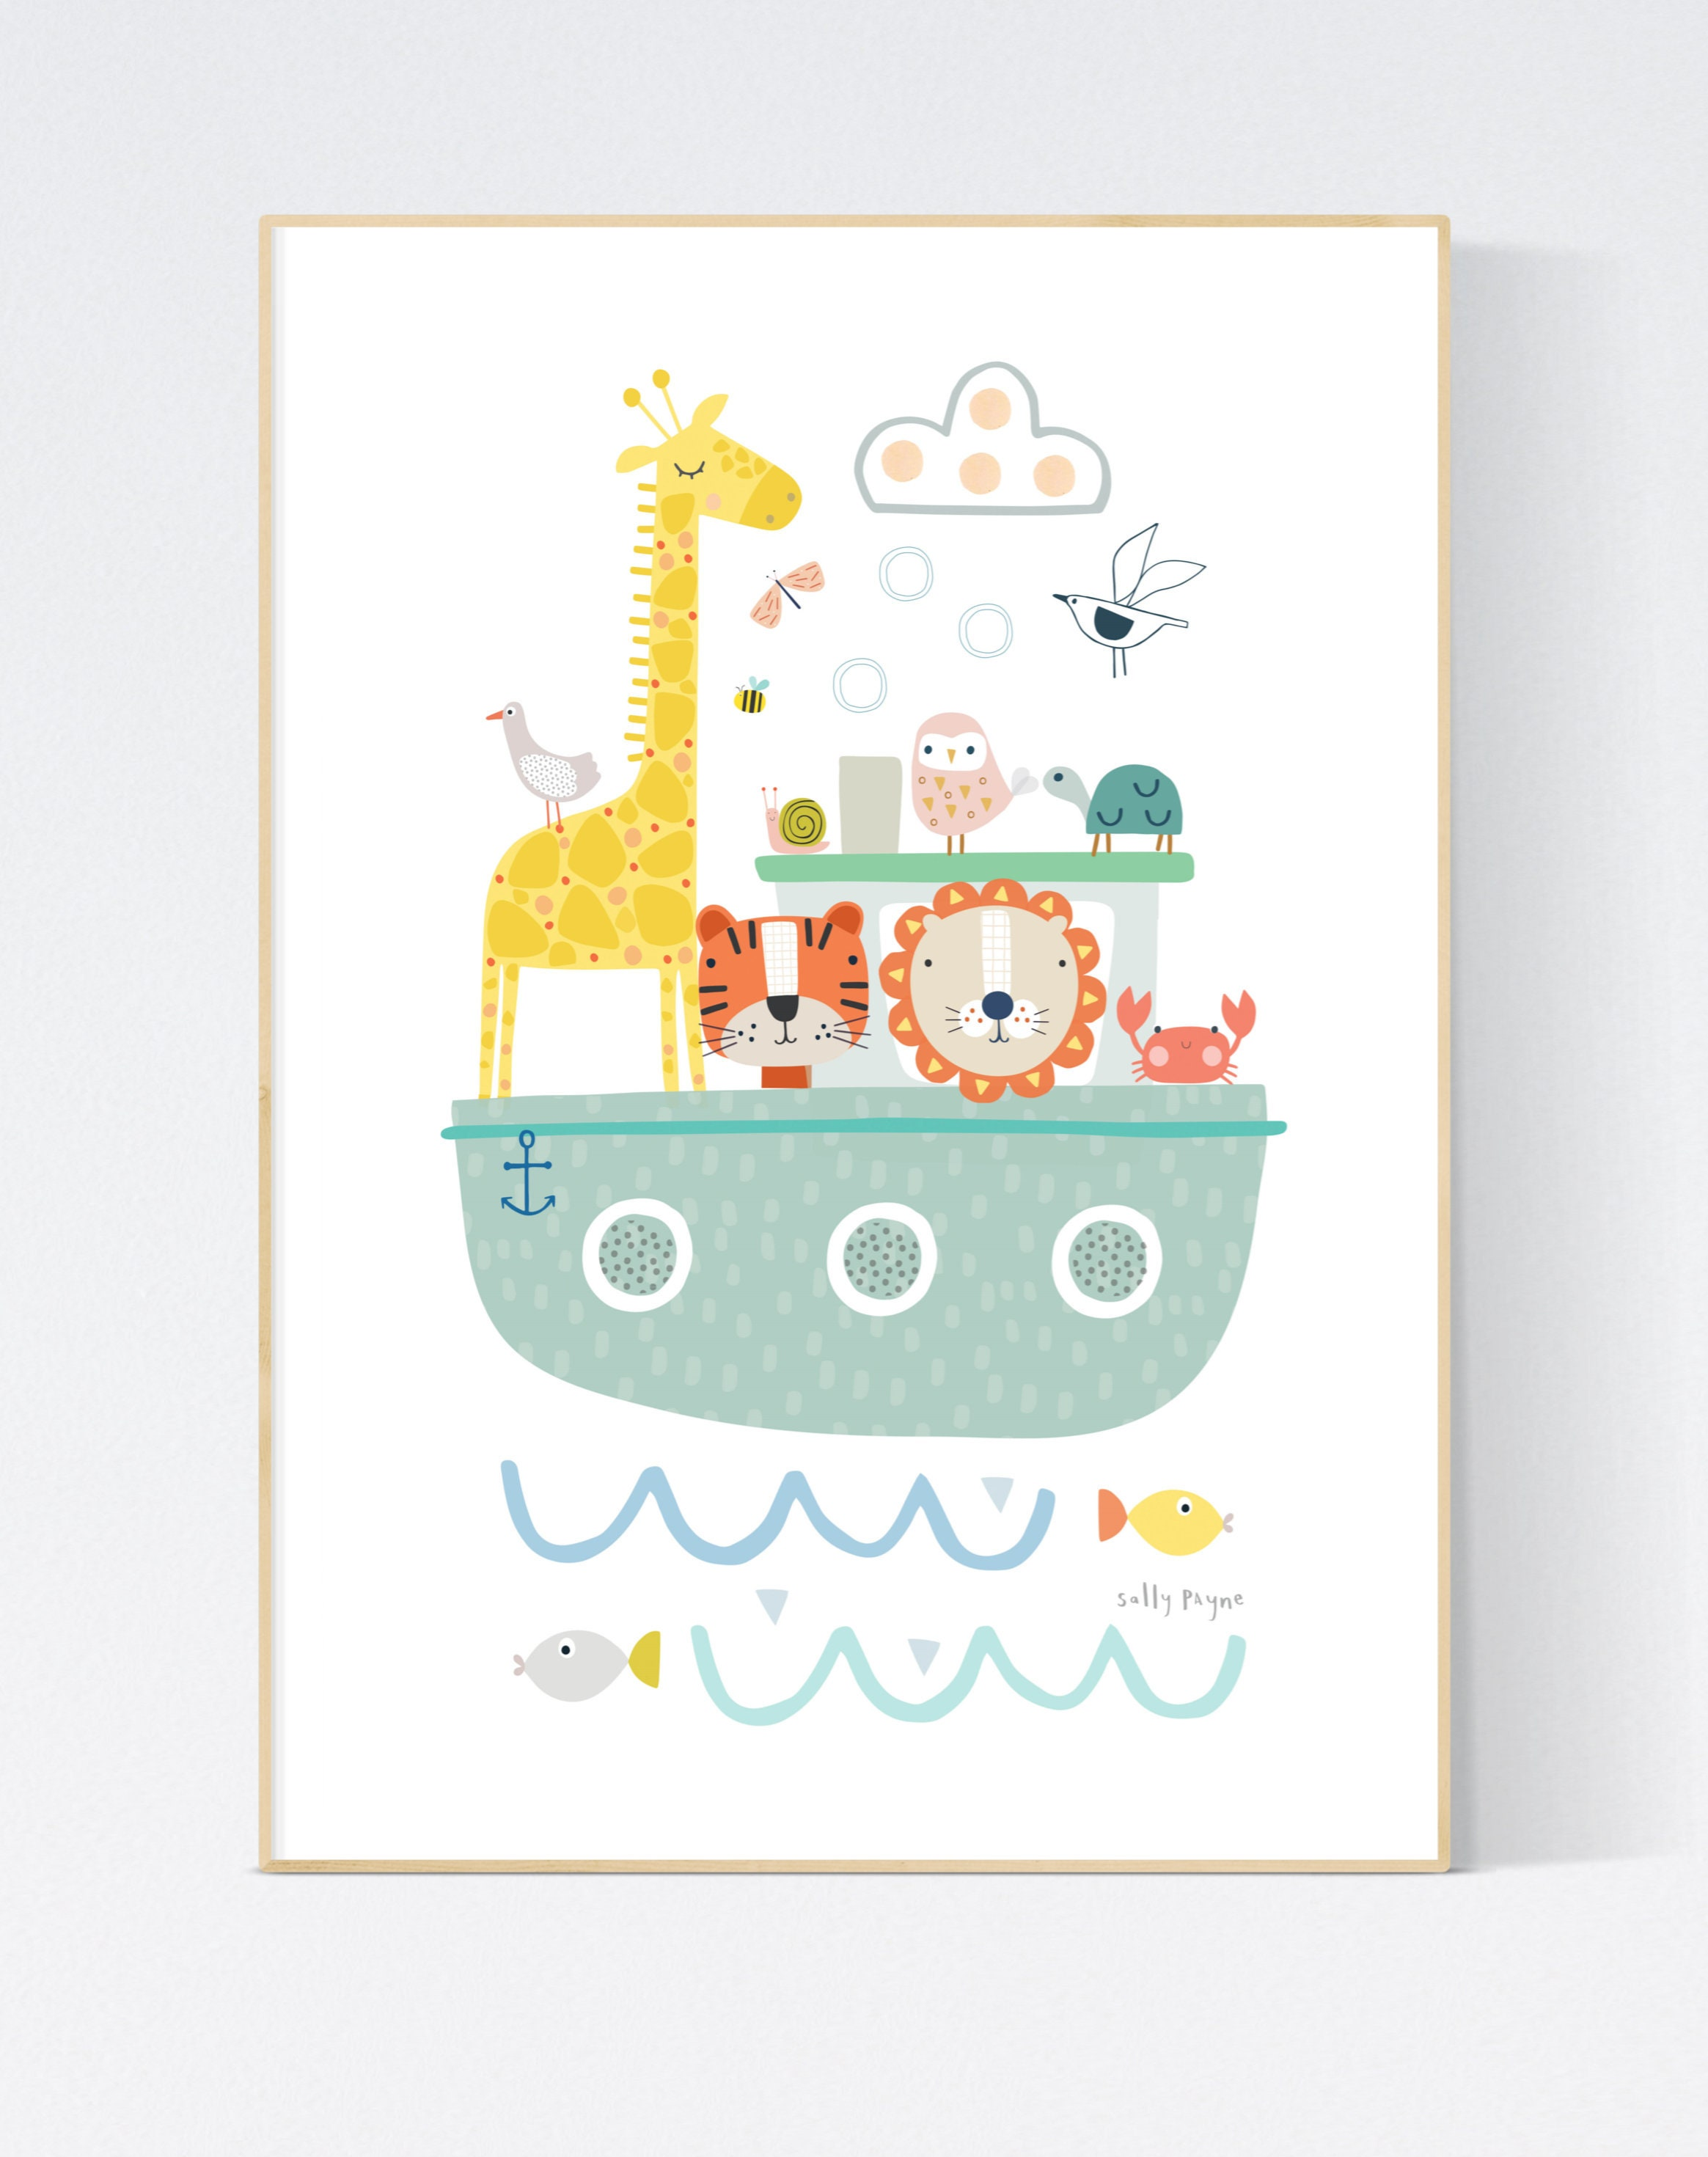 Animal Nautical Boat  Wall art -  wall art -  Wall prints - Children's wall art